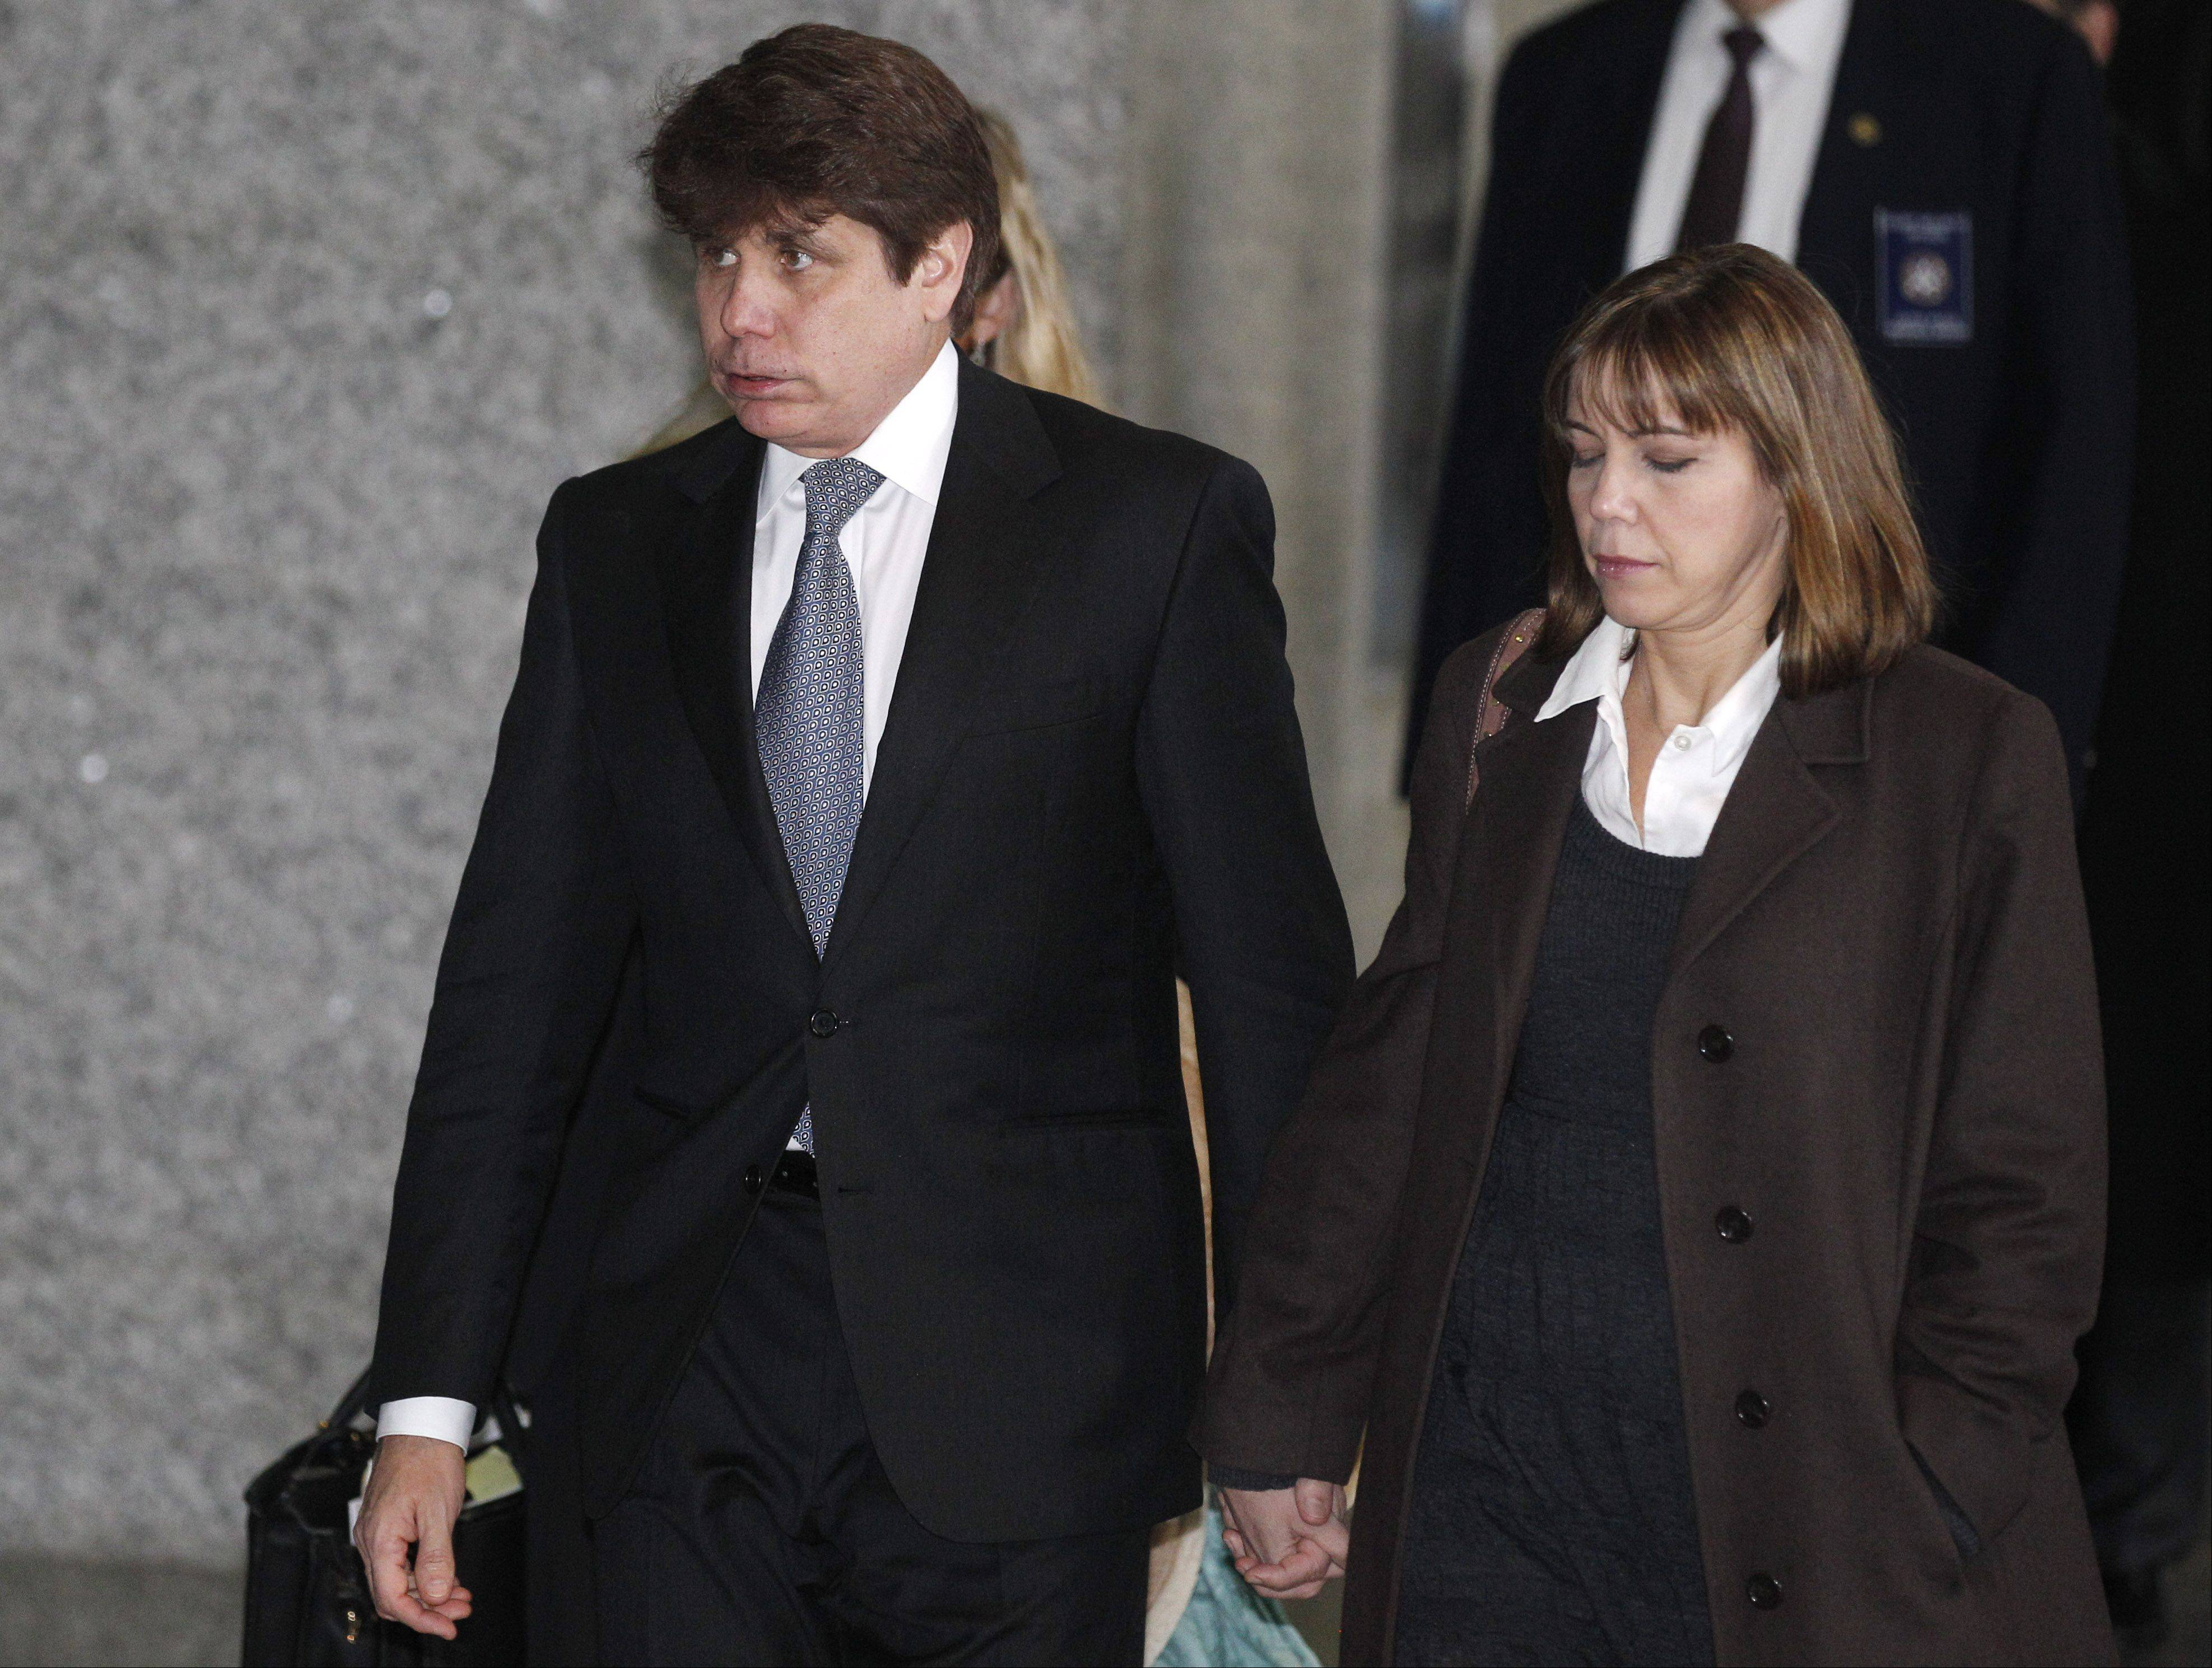 The cost and victims of Blago's crimes